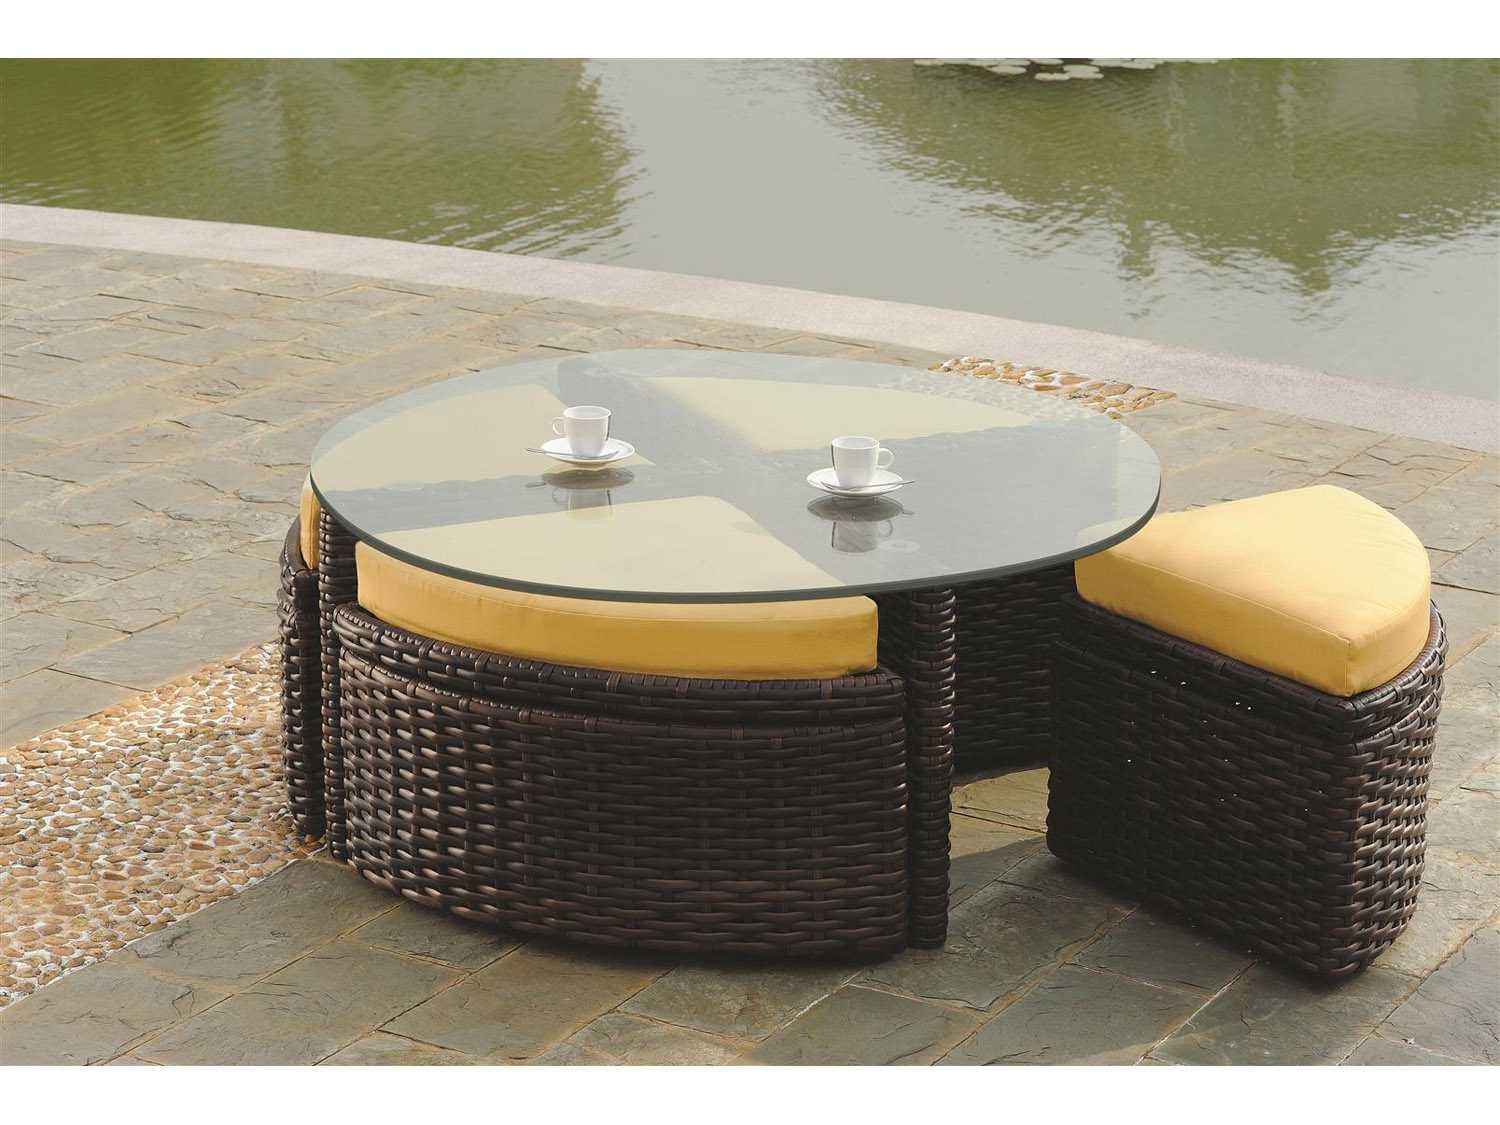 South Sea Rattan Saint Tropez Wicker 48 Round Glass Coffee Table With 4 Ottomans Sr79346